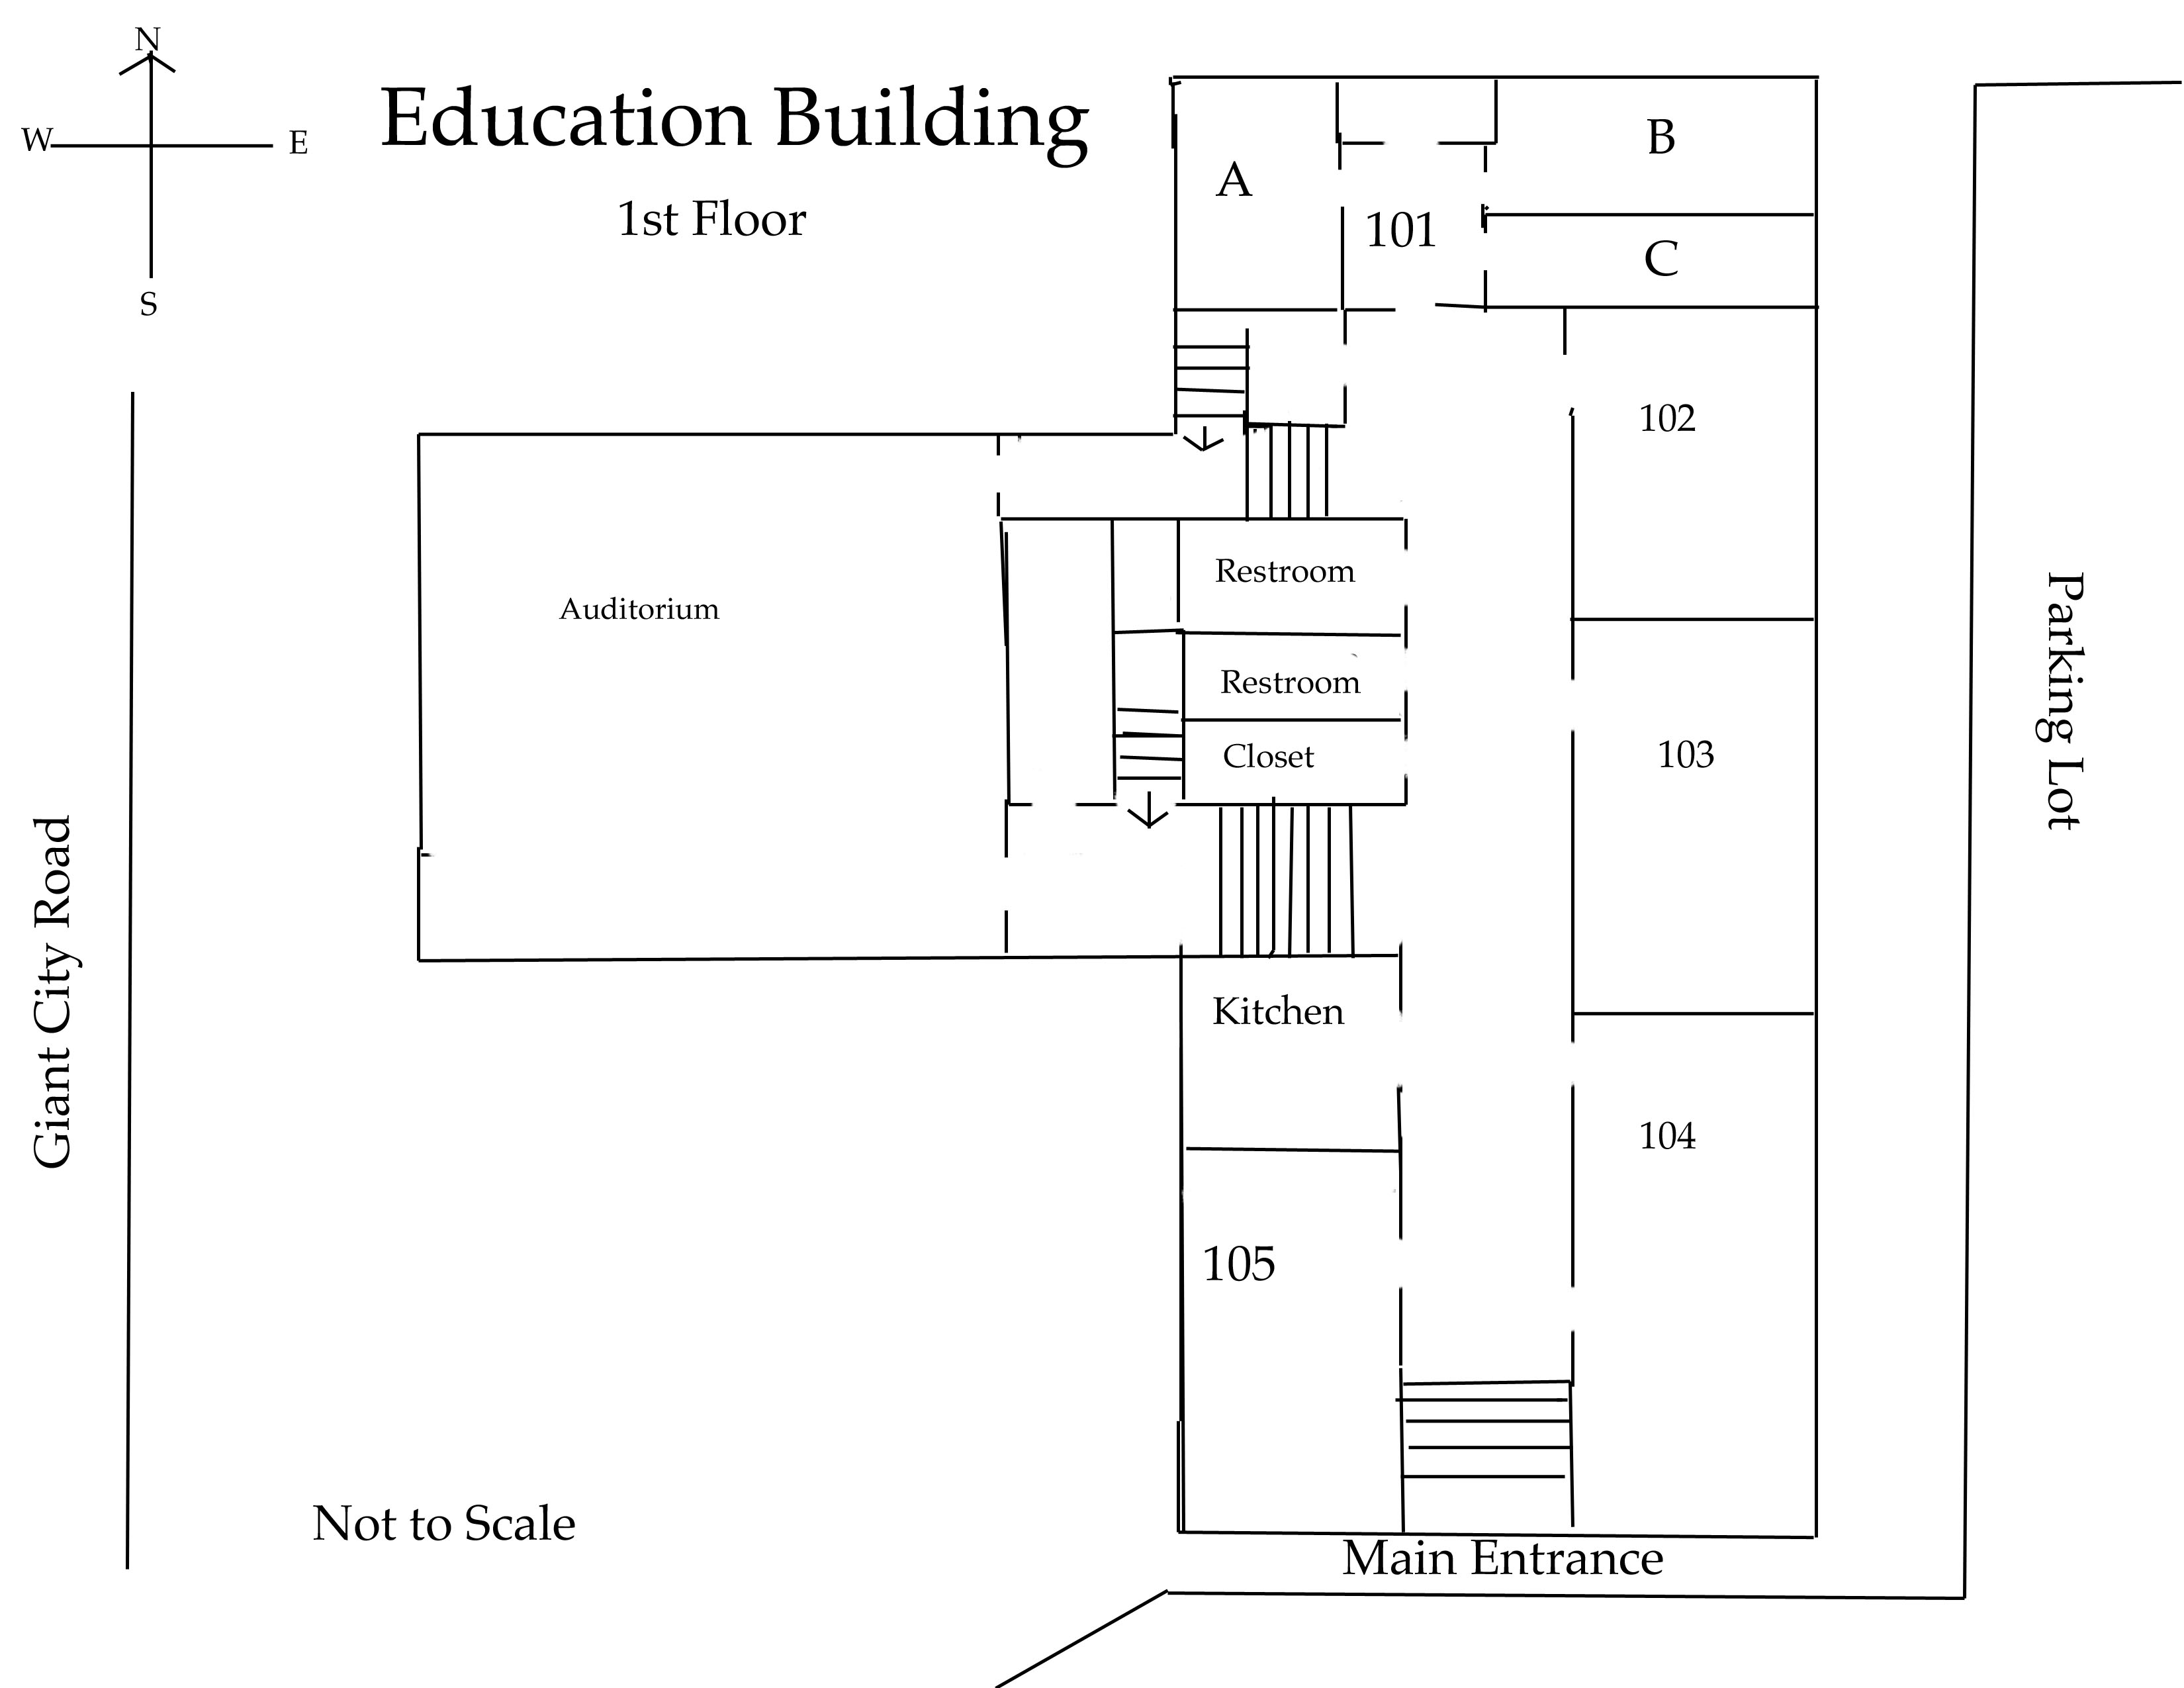 Education Building First Floor